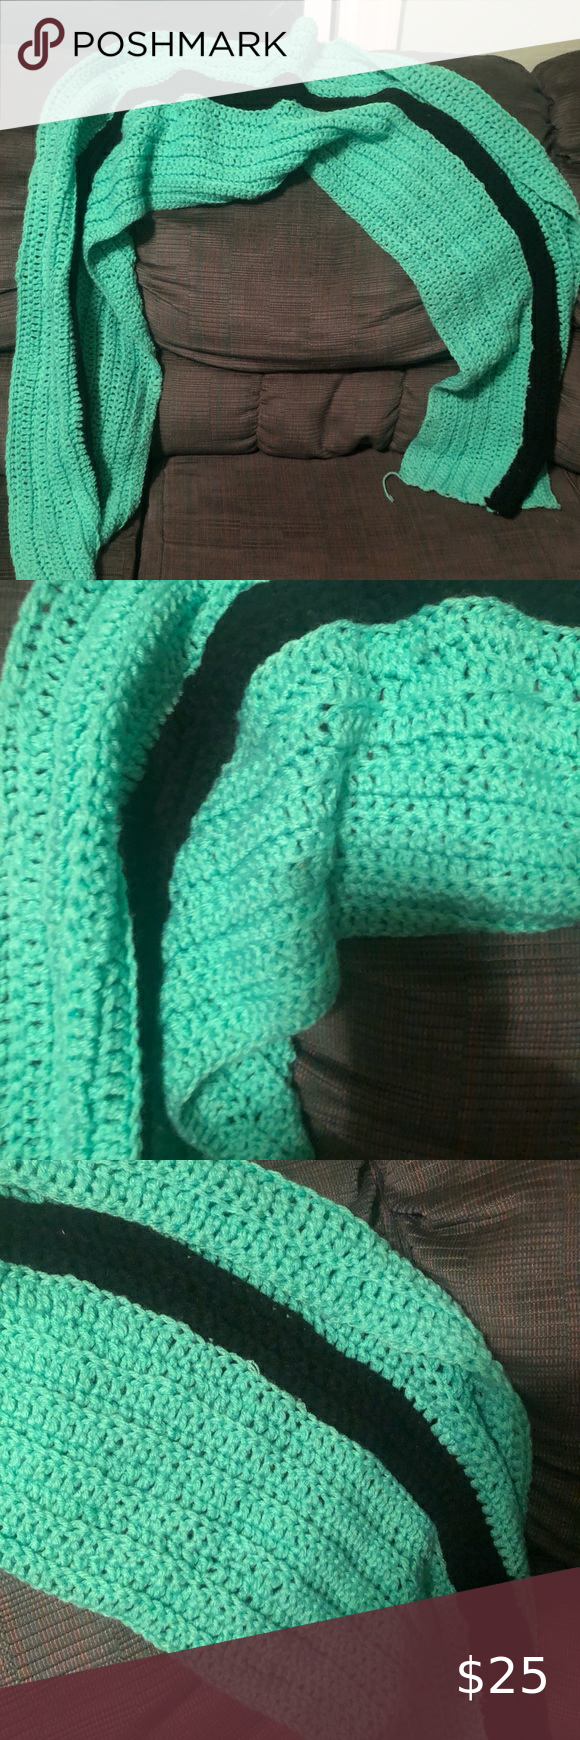 Photo of Knitted scarf wrap Knitted scarf ? wrap order any color knitted by ashley bou…